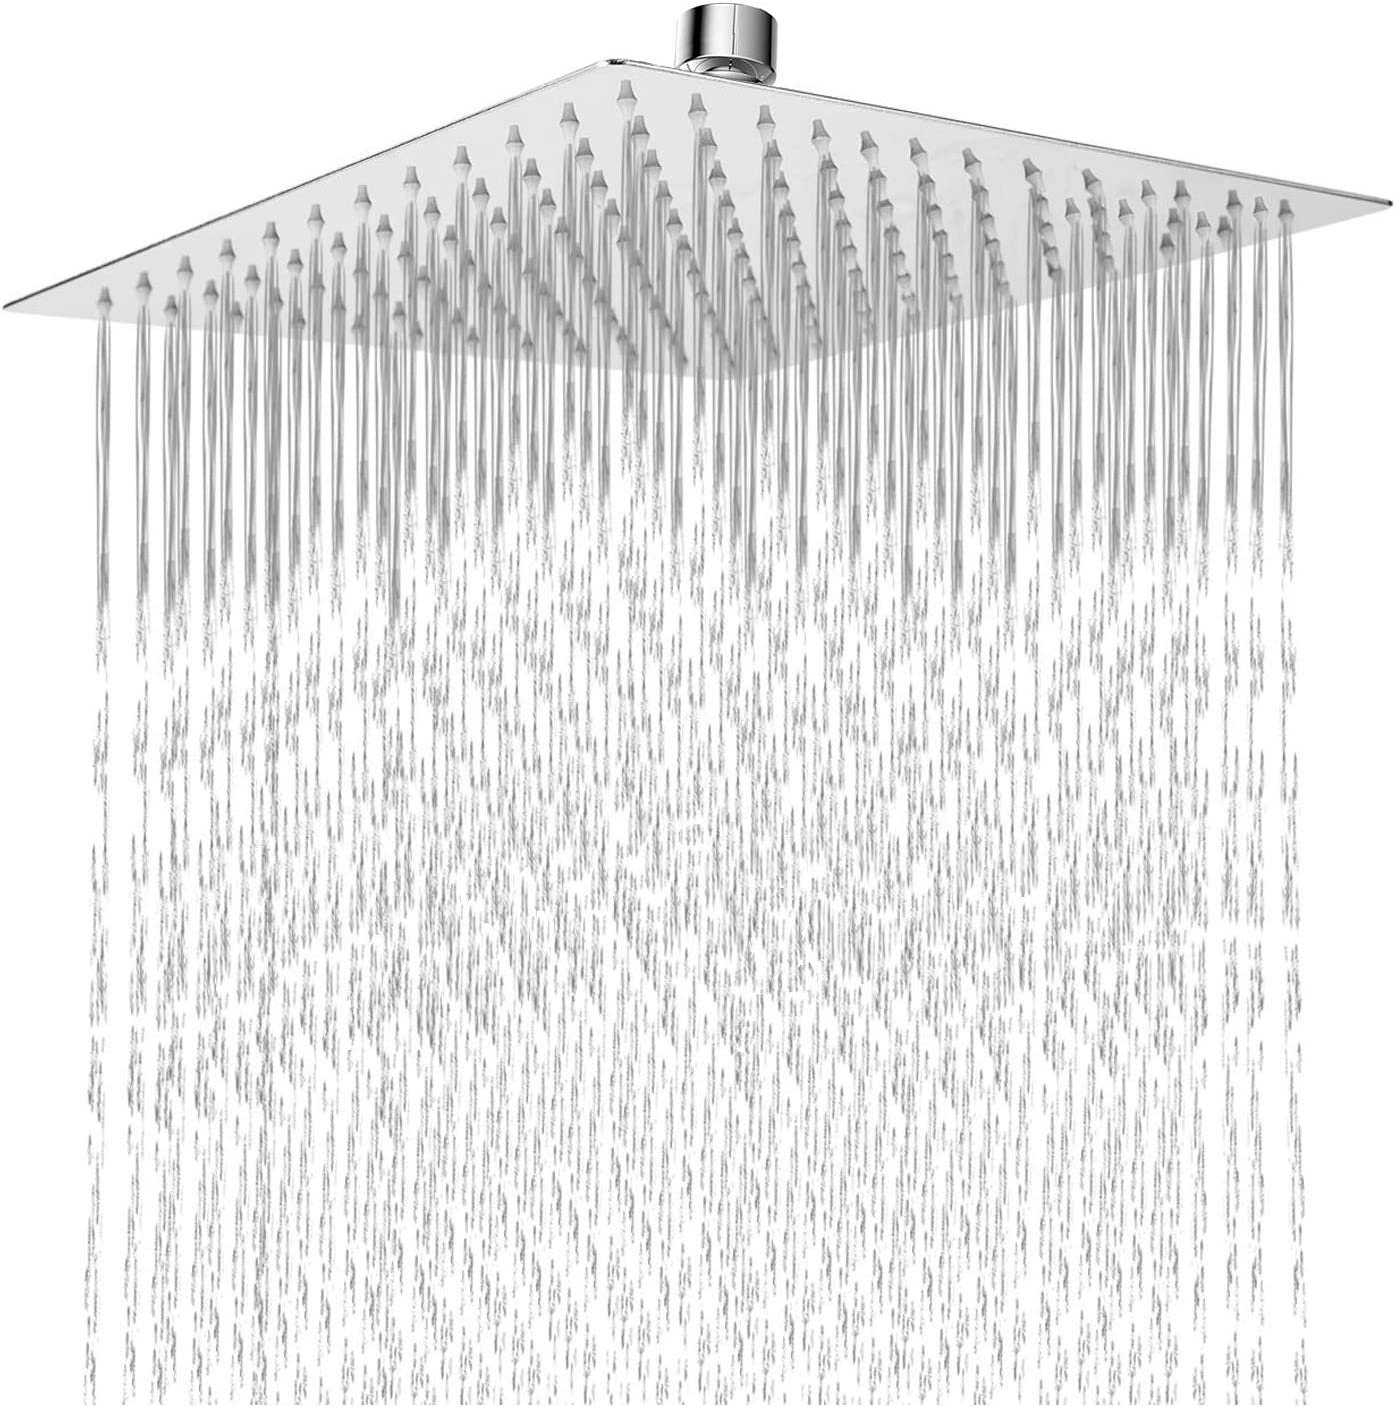 Large Staineless Steel Rain Shower Head, HarJue 12 Inch Square High Pressure High Flow Showerhead, full Body Covering, Universal Wall and Ceiling Mount, Adjustable Angle